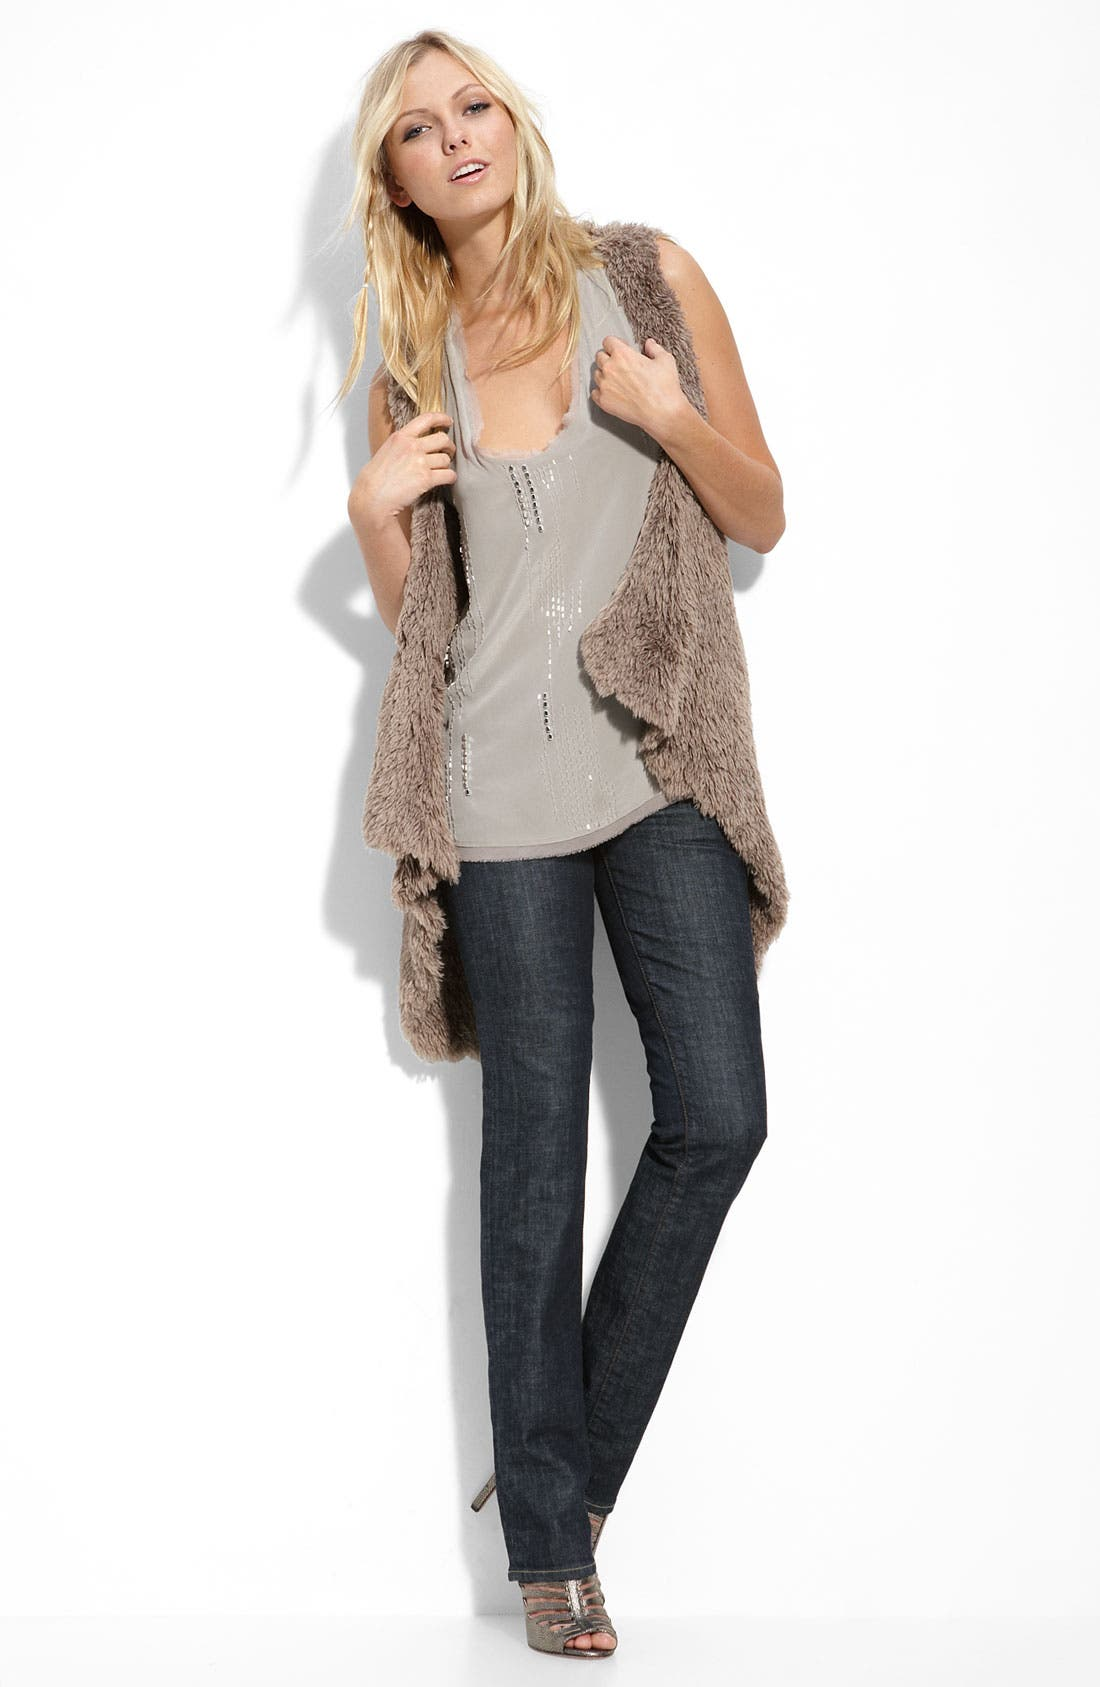 Pure Sugar Tank & Kensie Faux Fur Vest with Citizens of Humanity Stretch Jeans,                         Alternate,                         color,